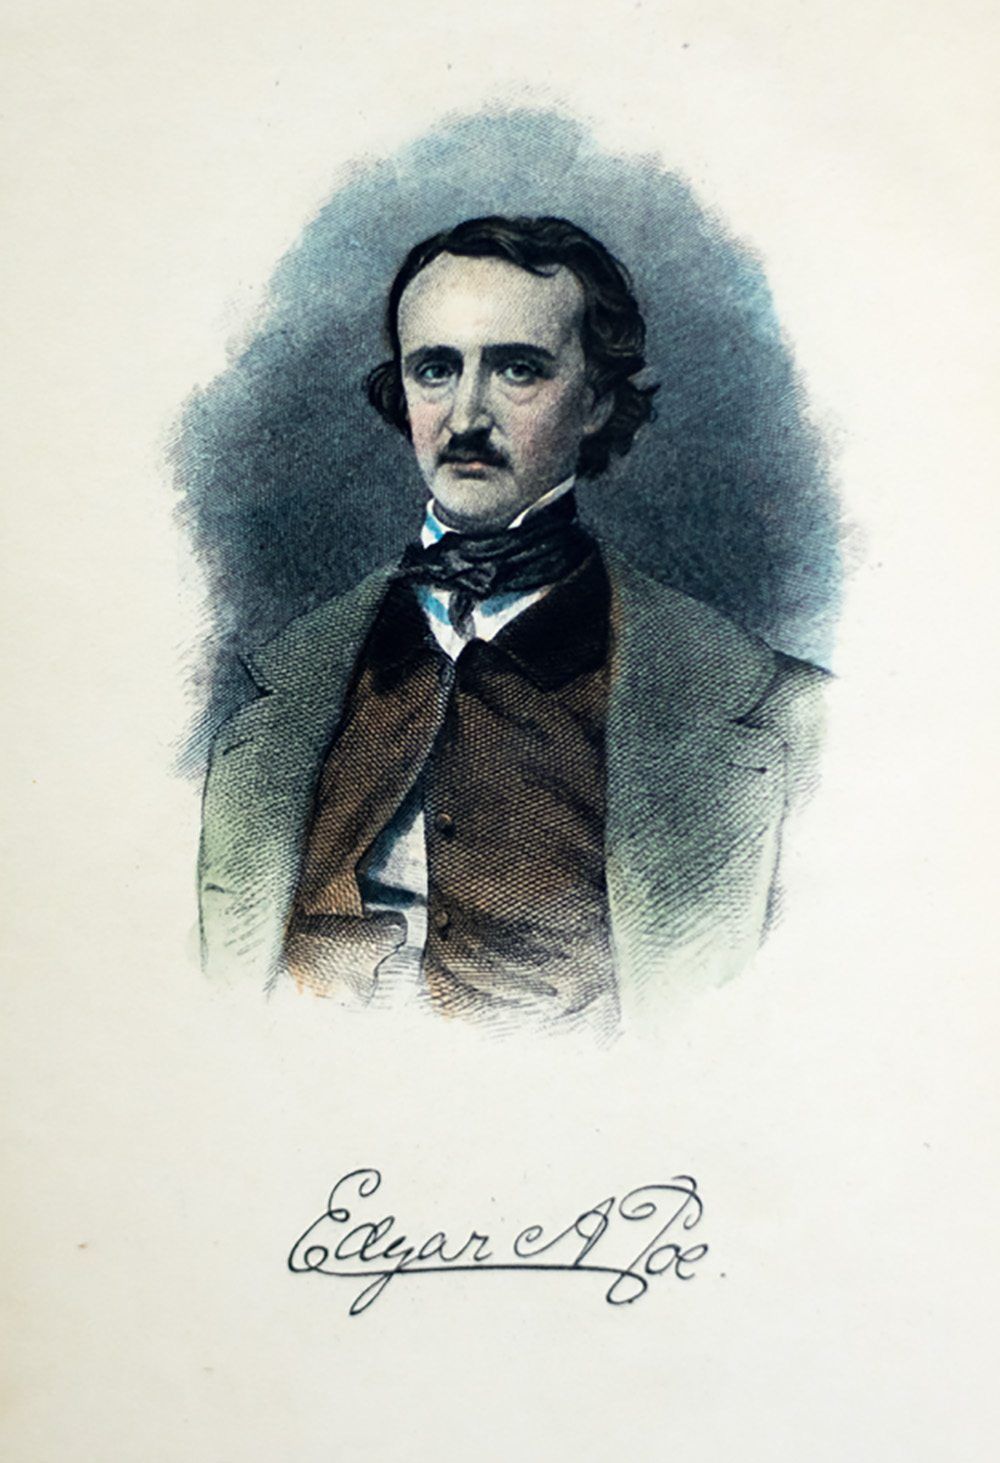 an examination of the works of edgar allan poe Home studentswho was edgar allan poe who was edgar allan poe edgar allan poe was one of the most important and influential american writers of the 19th century.